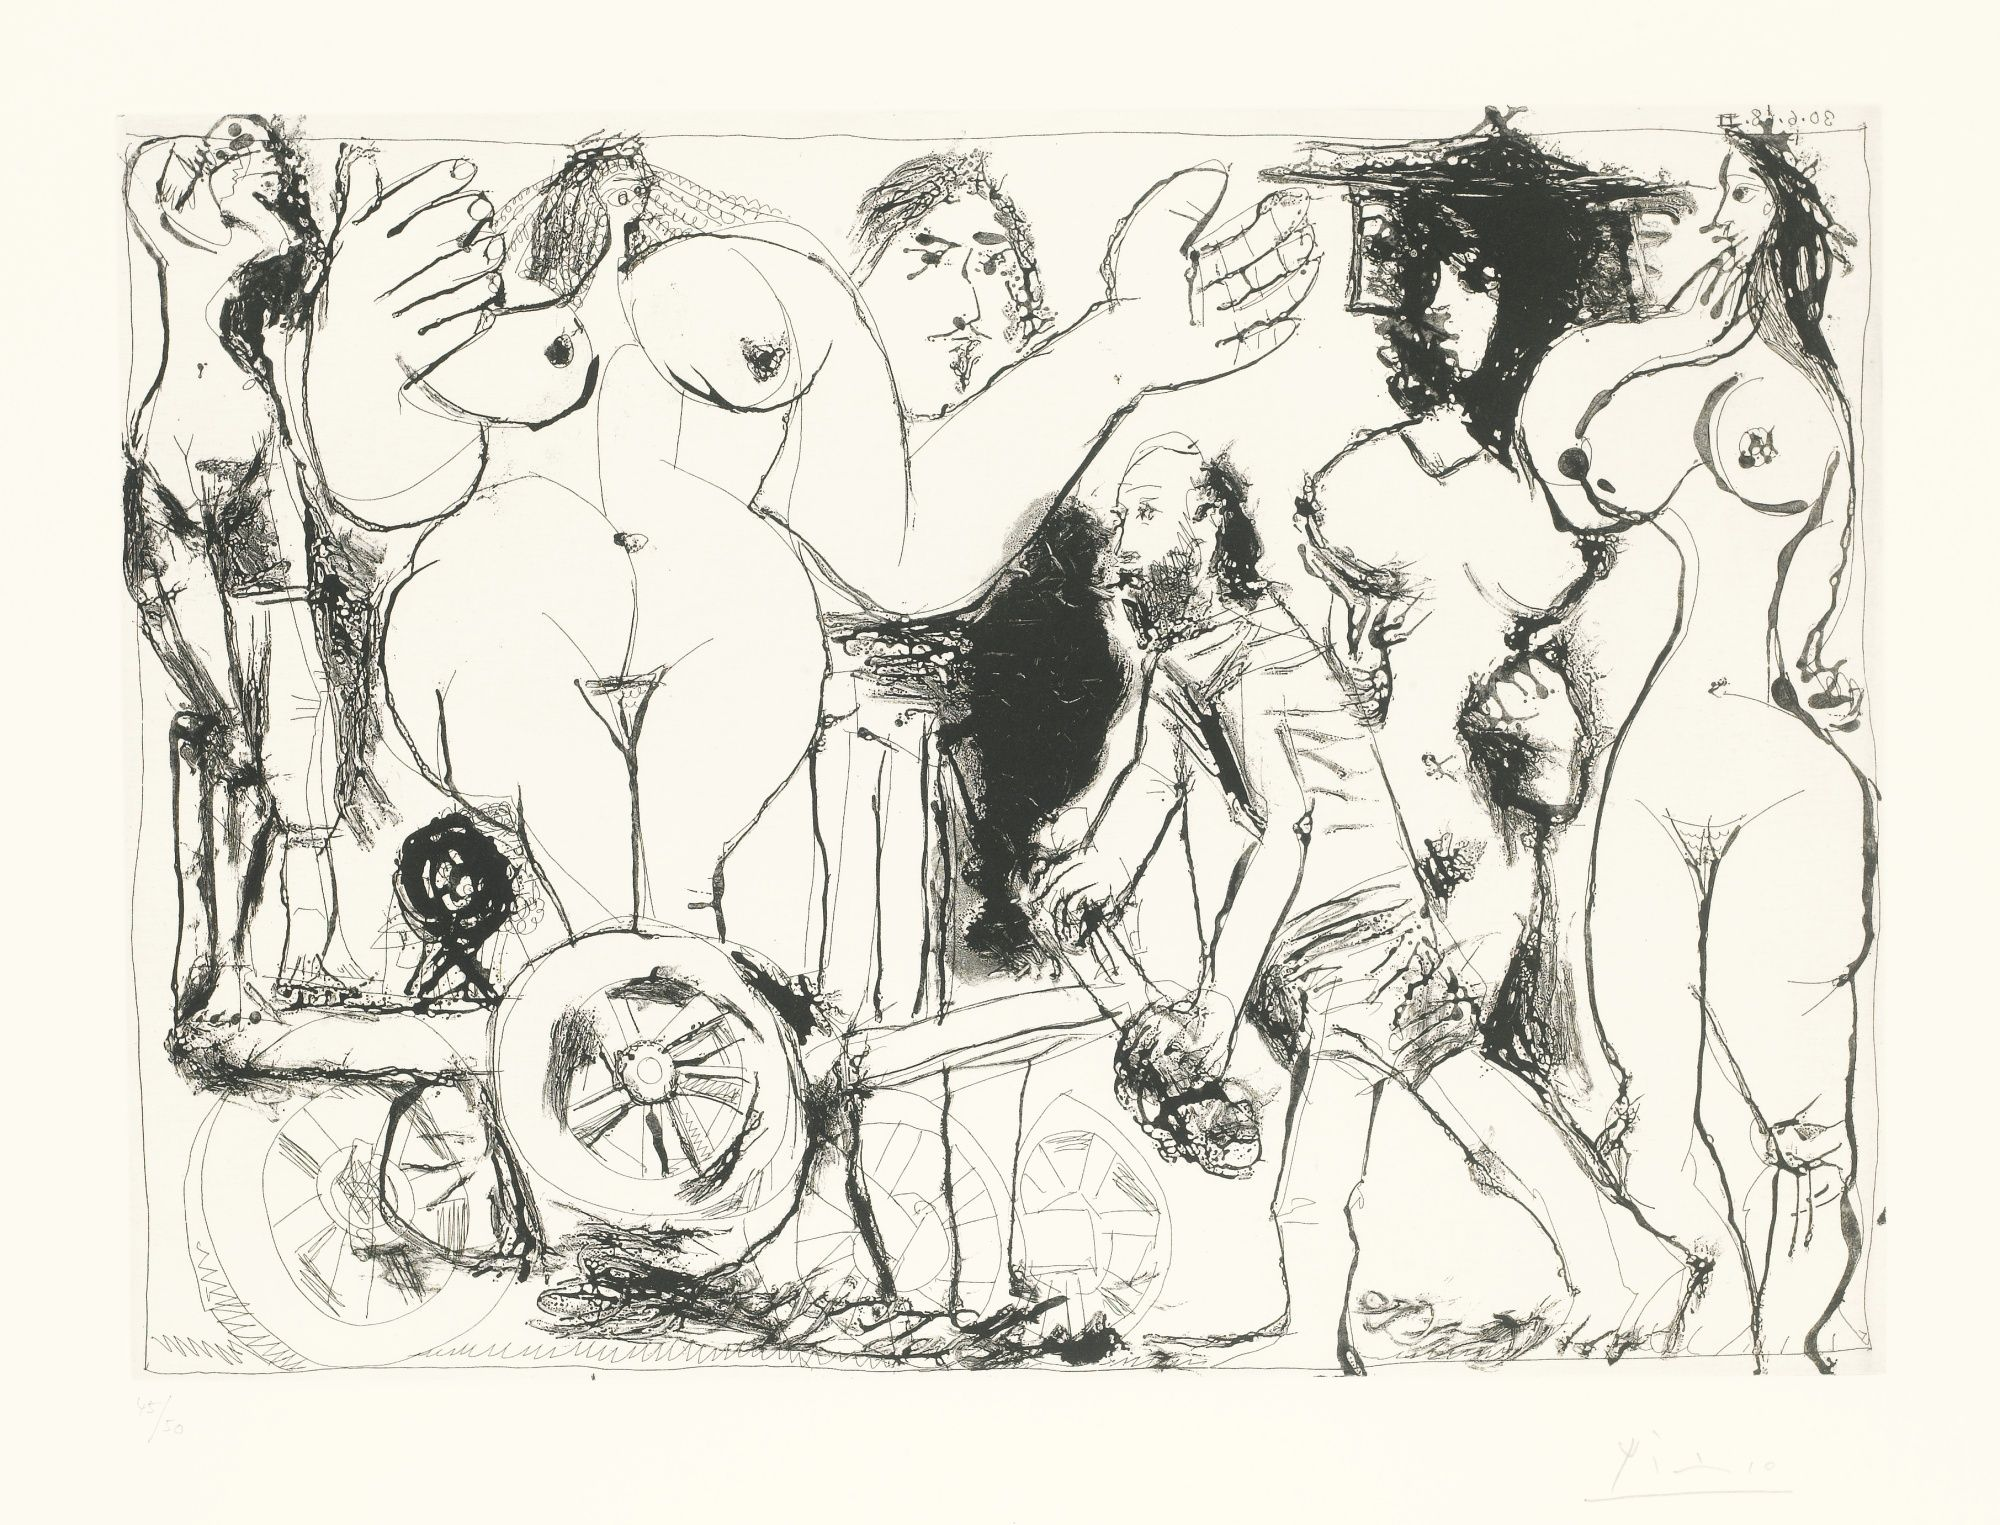 Pablo Picasso,series 347 , etching and aquatint ,1968 Demenagement | Lot | Sotheby's